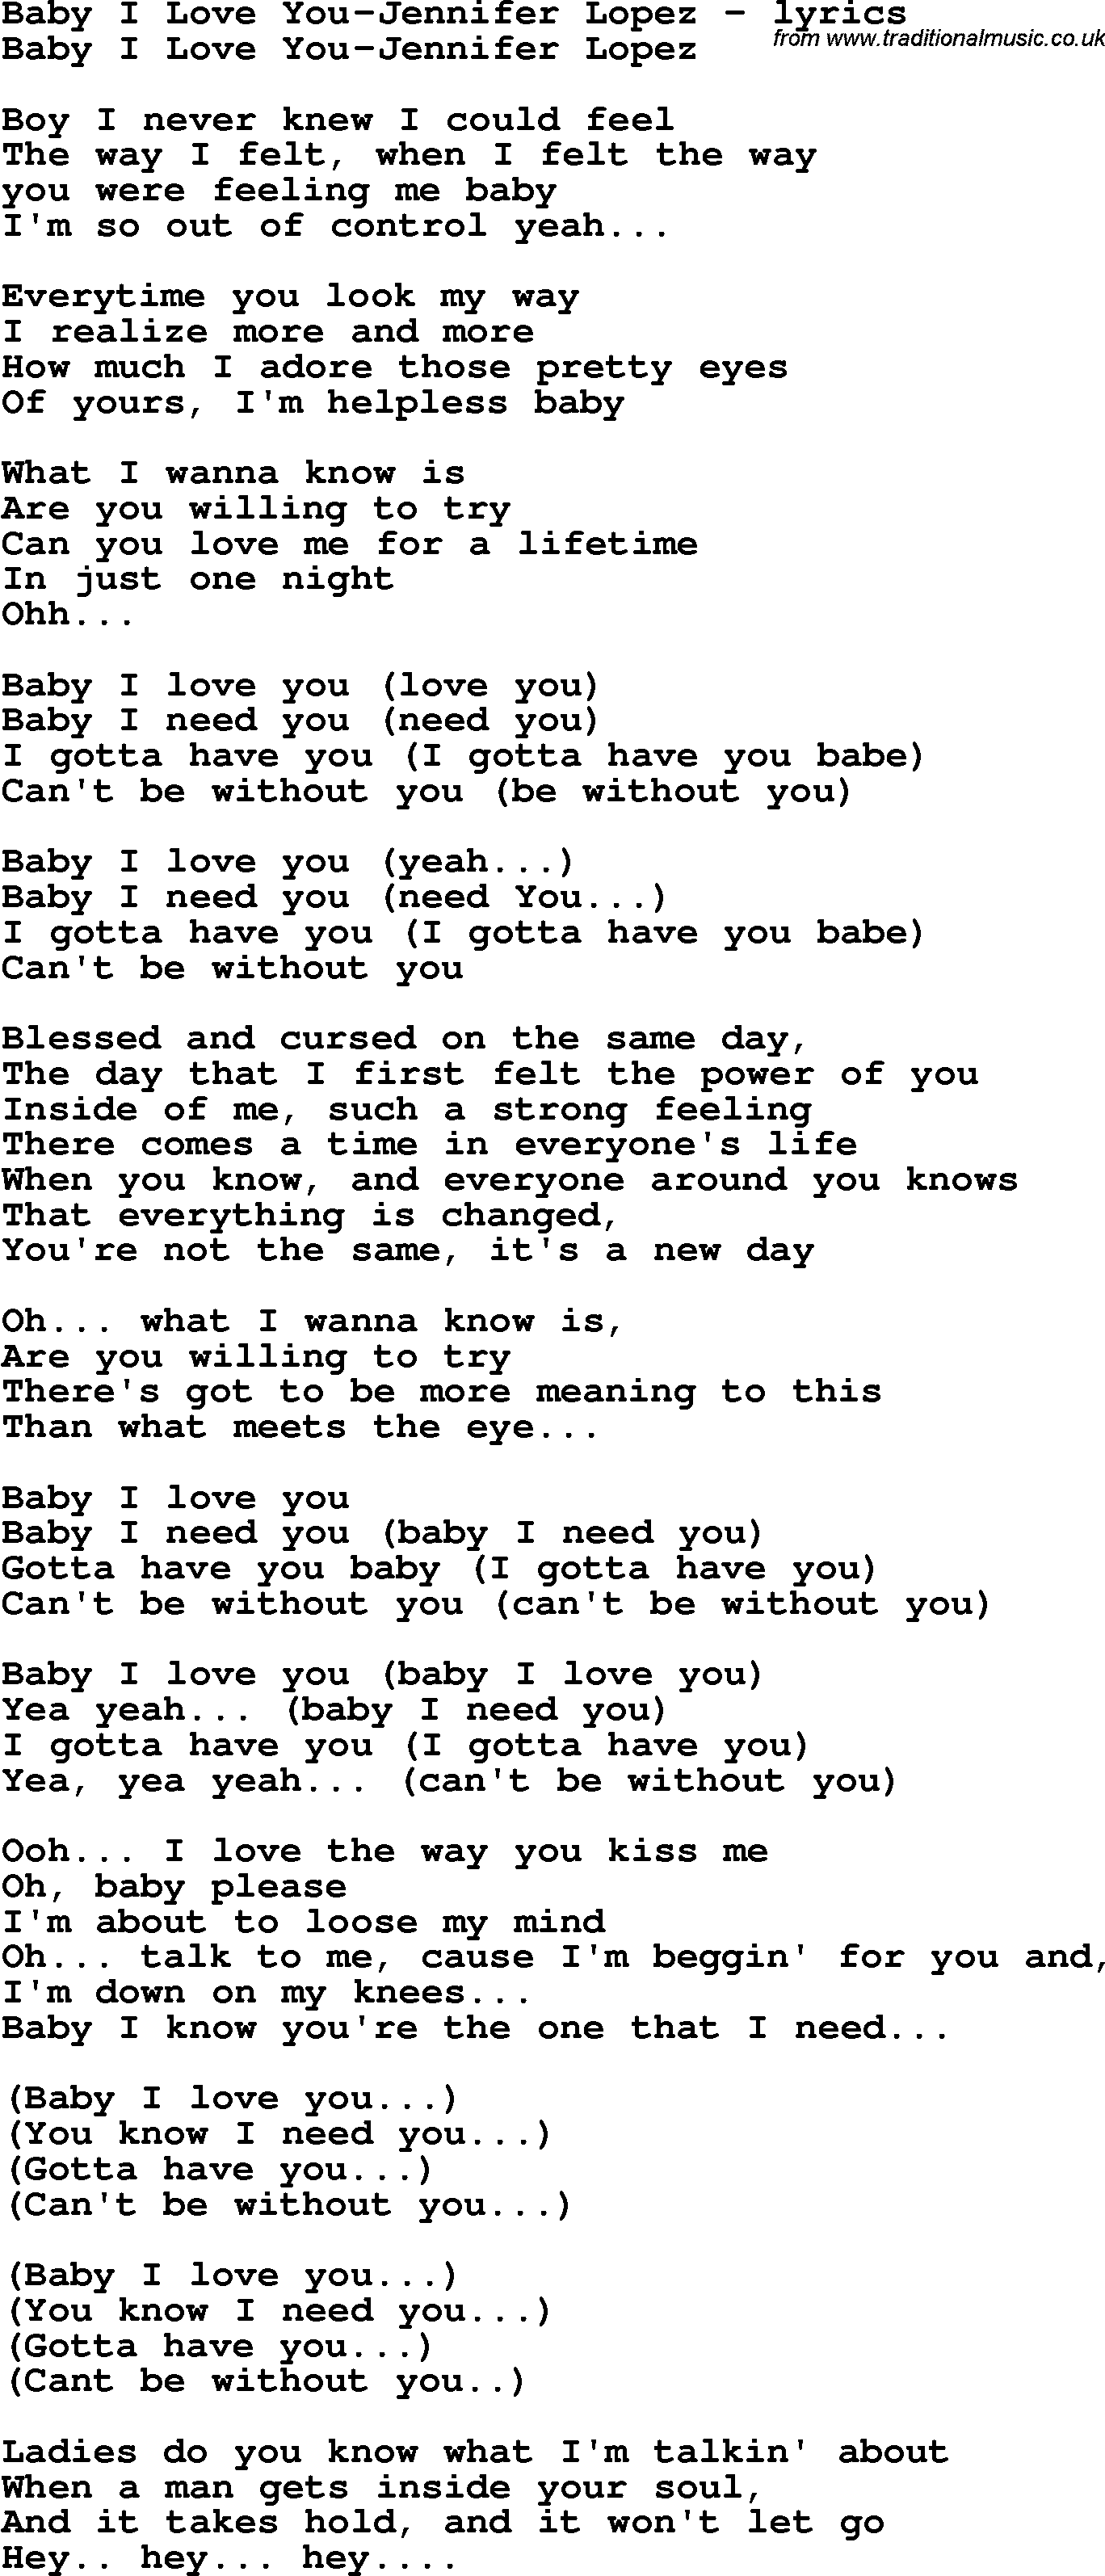 Baby i need you lyrics